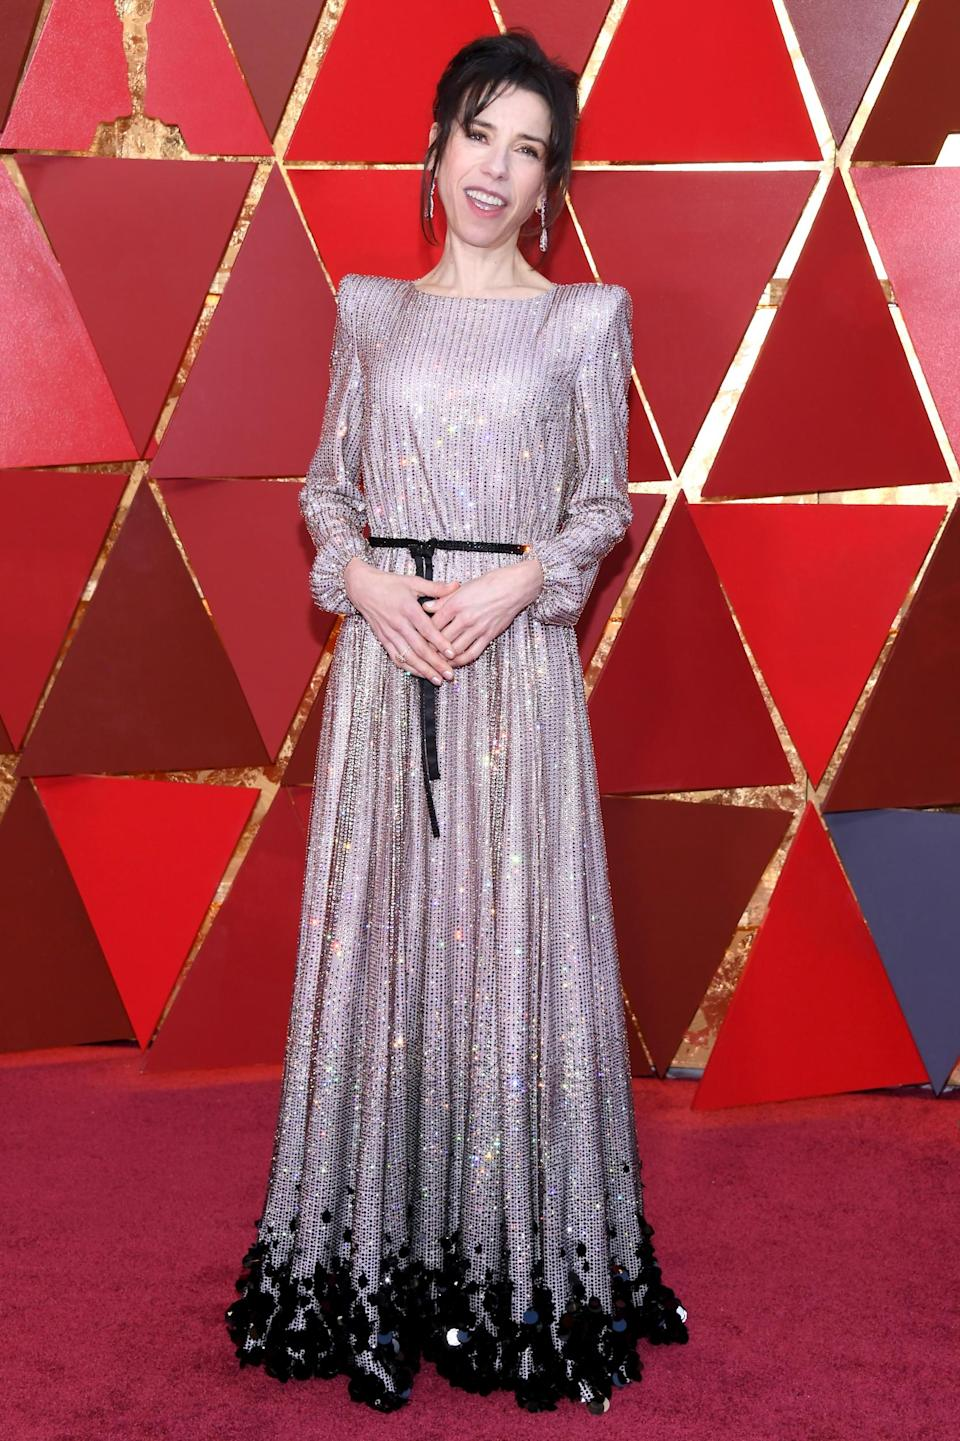 Hawkins at the 2018 Oscars (Getty Images)